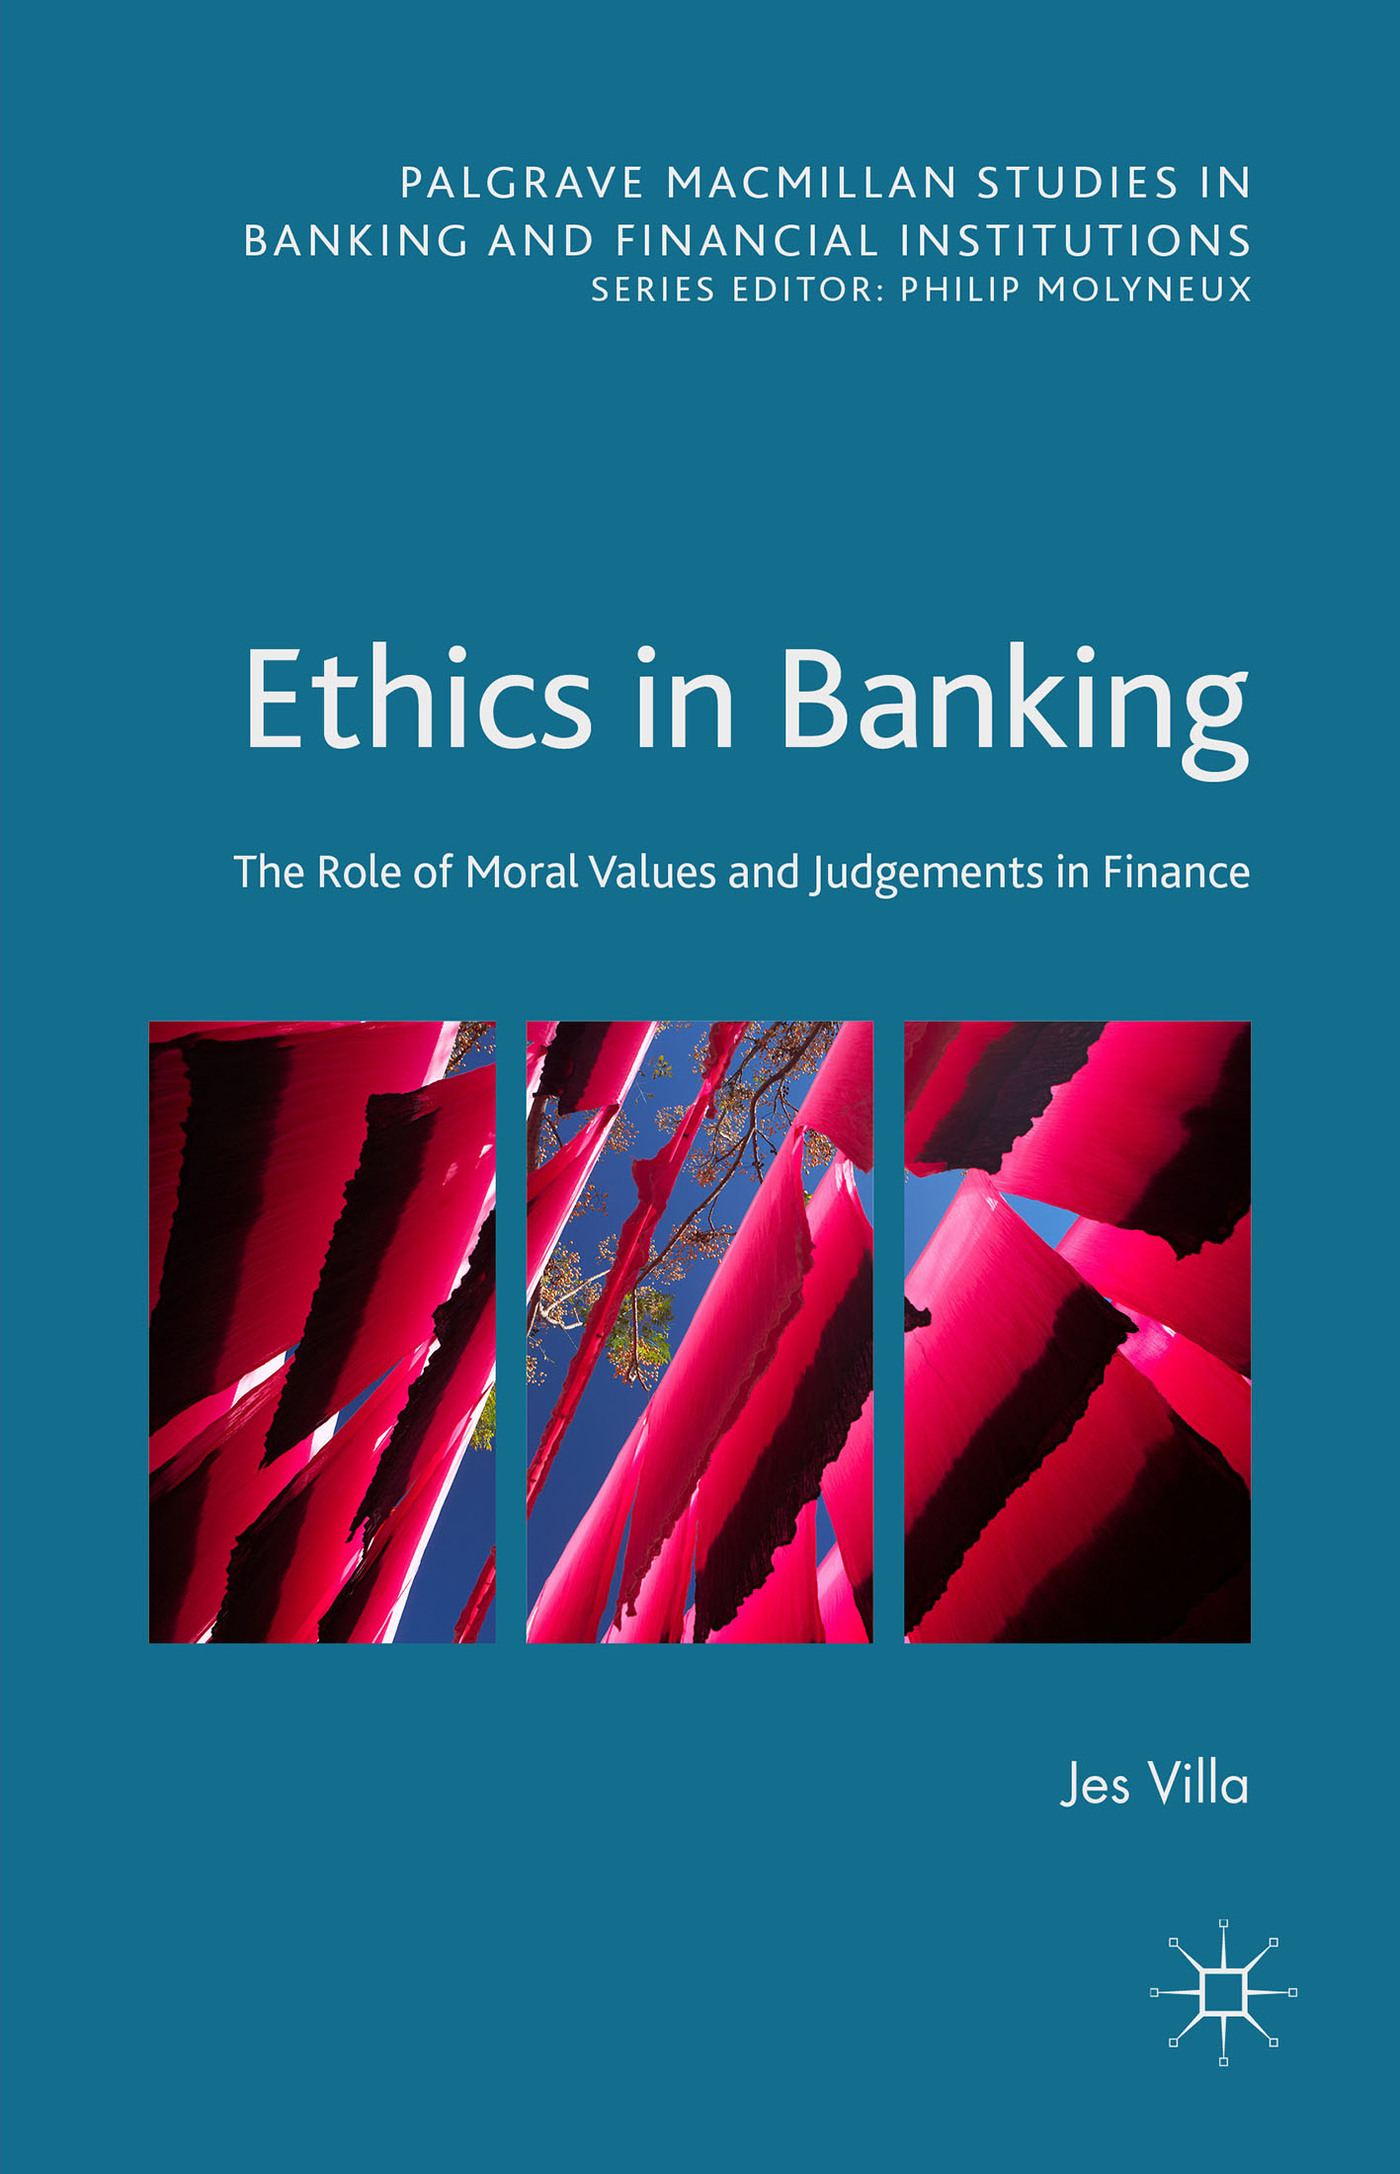 Ethics in Banking: The Role of Moral Values and Judgements in Finance Jes Villa